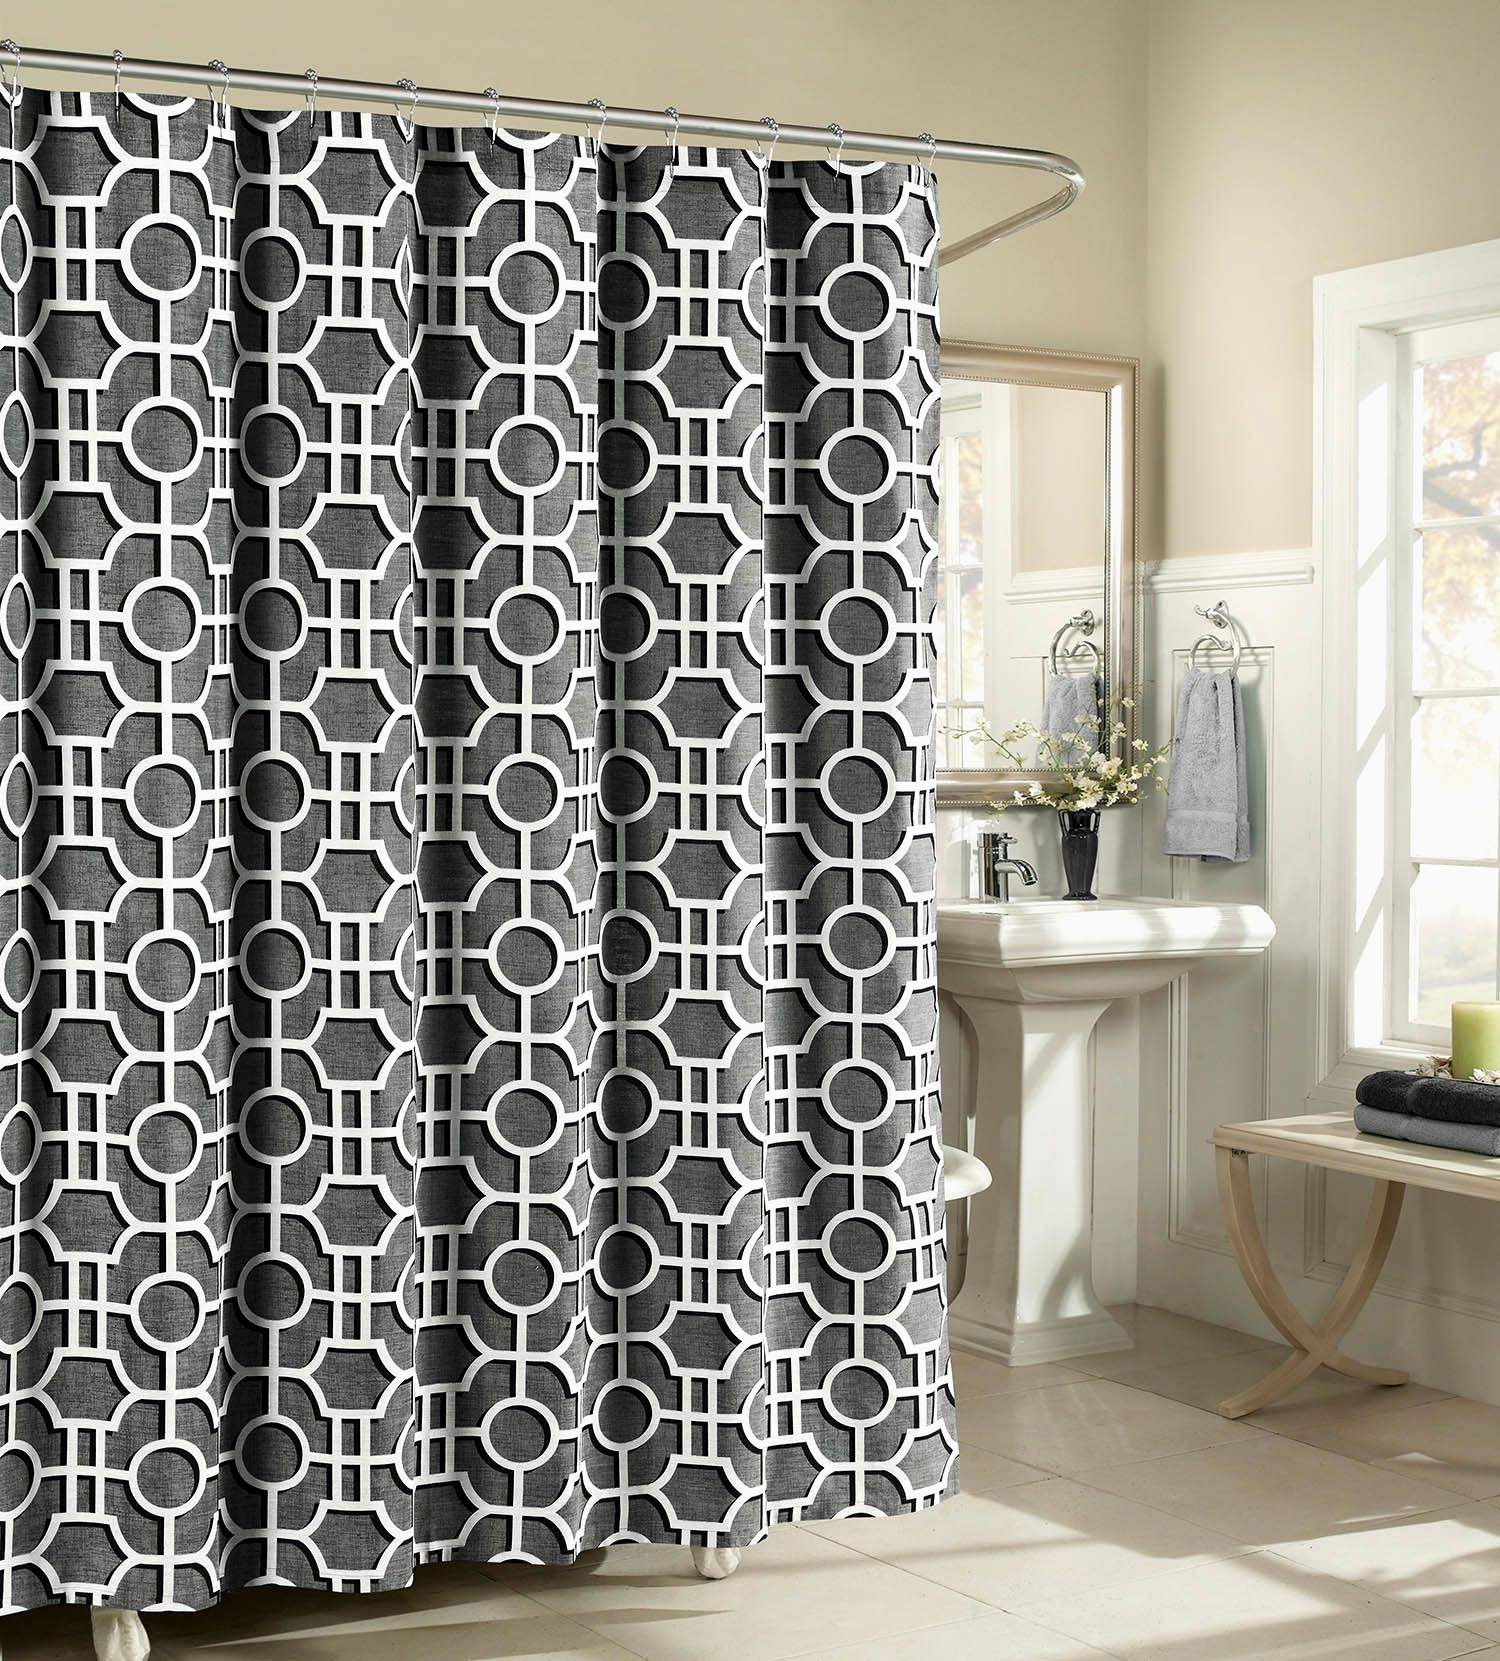 Outhouse Bathroom Ideas Country Outhouse Shower Curtain Design Modern Home